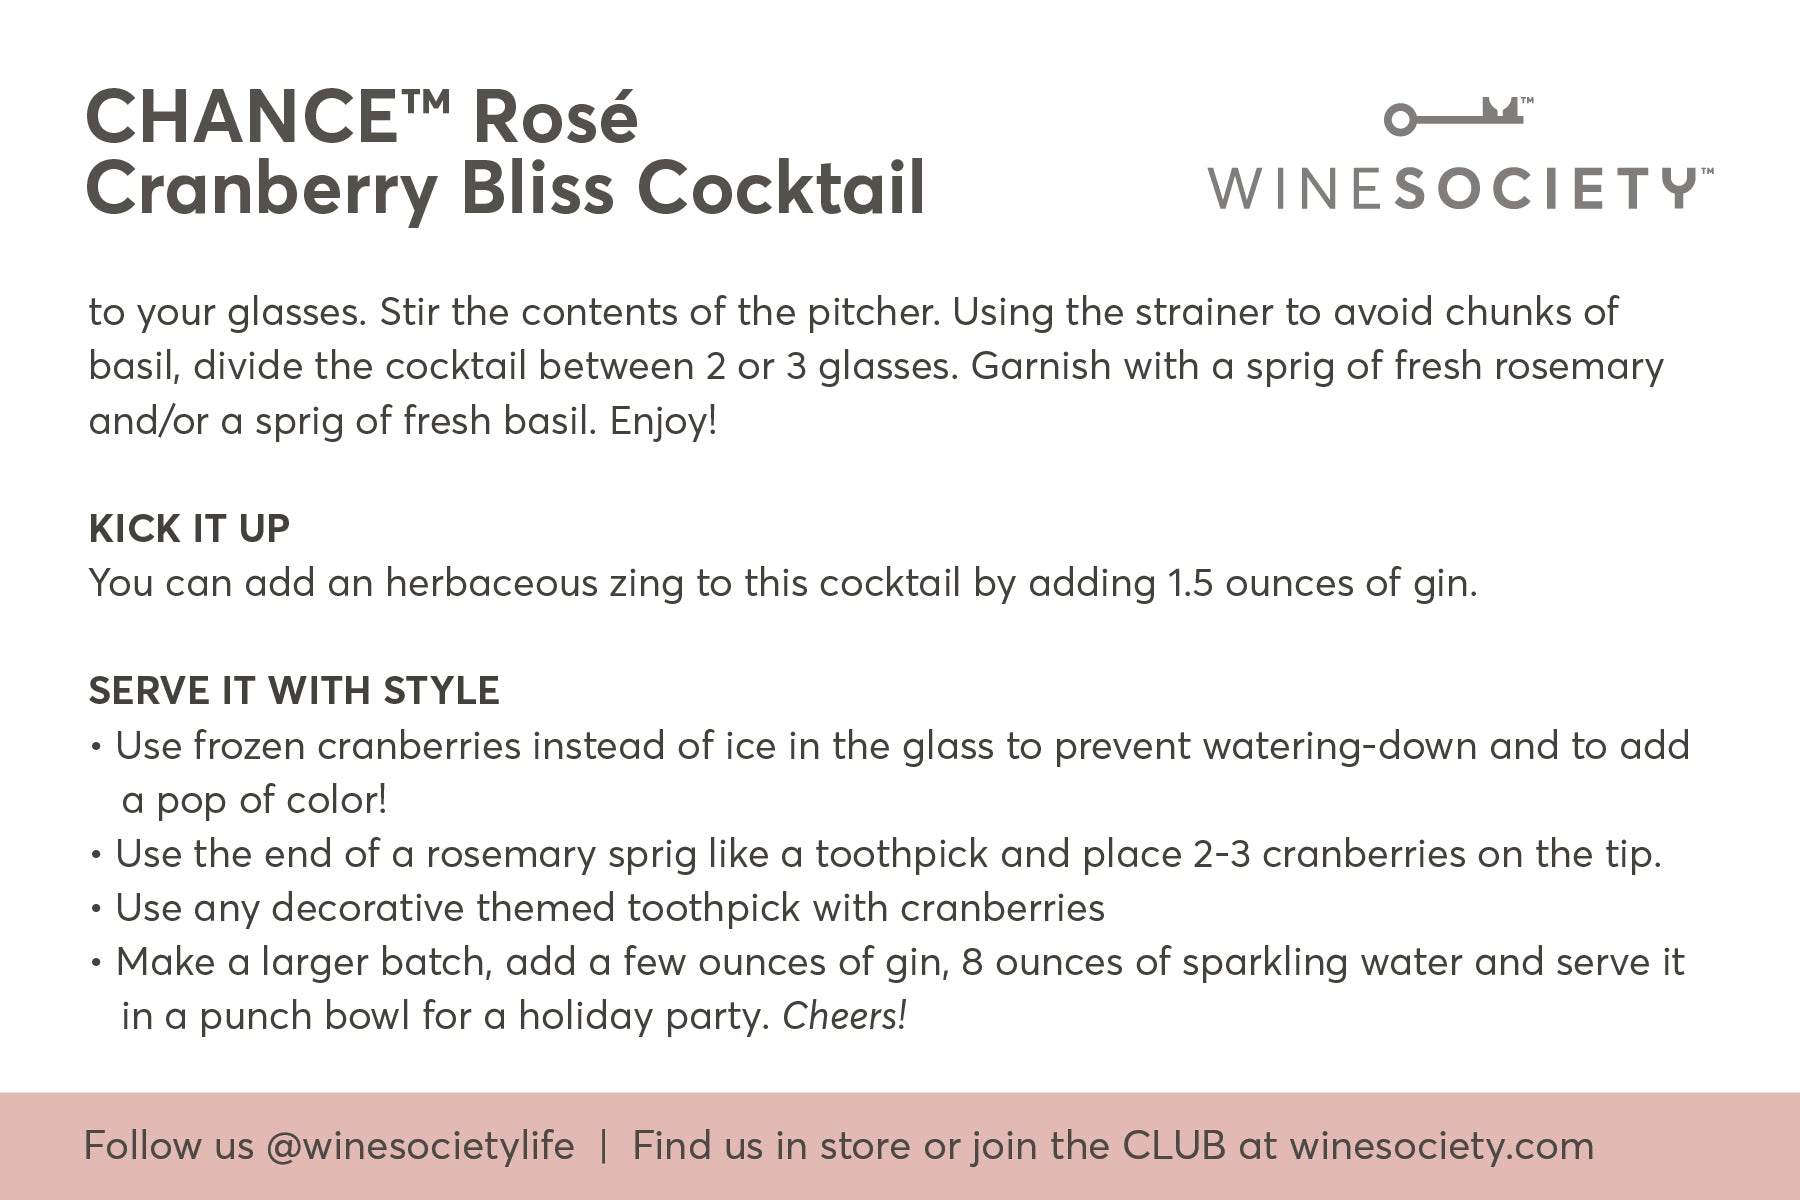 CHANCE cocktail recipe card